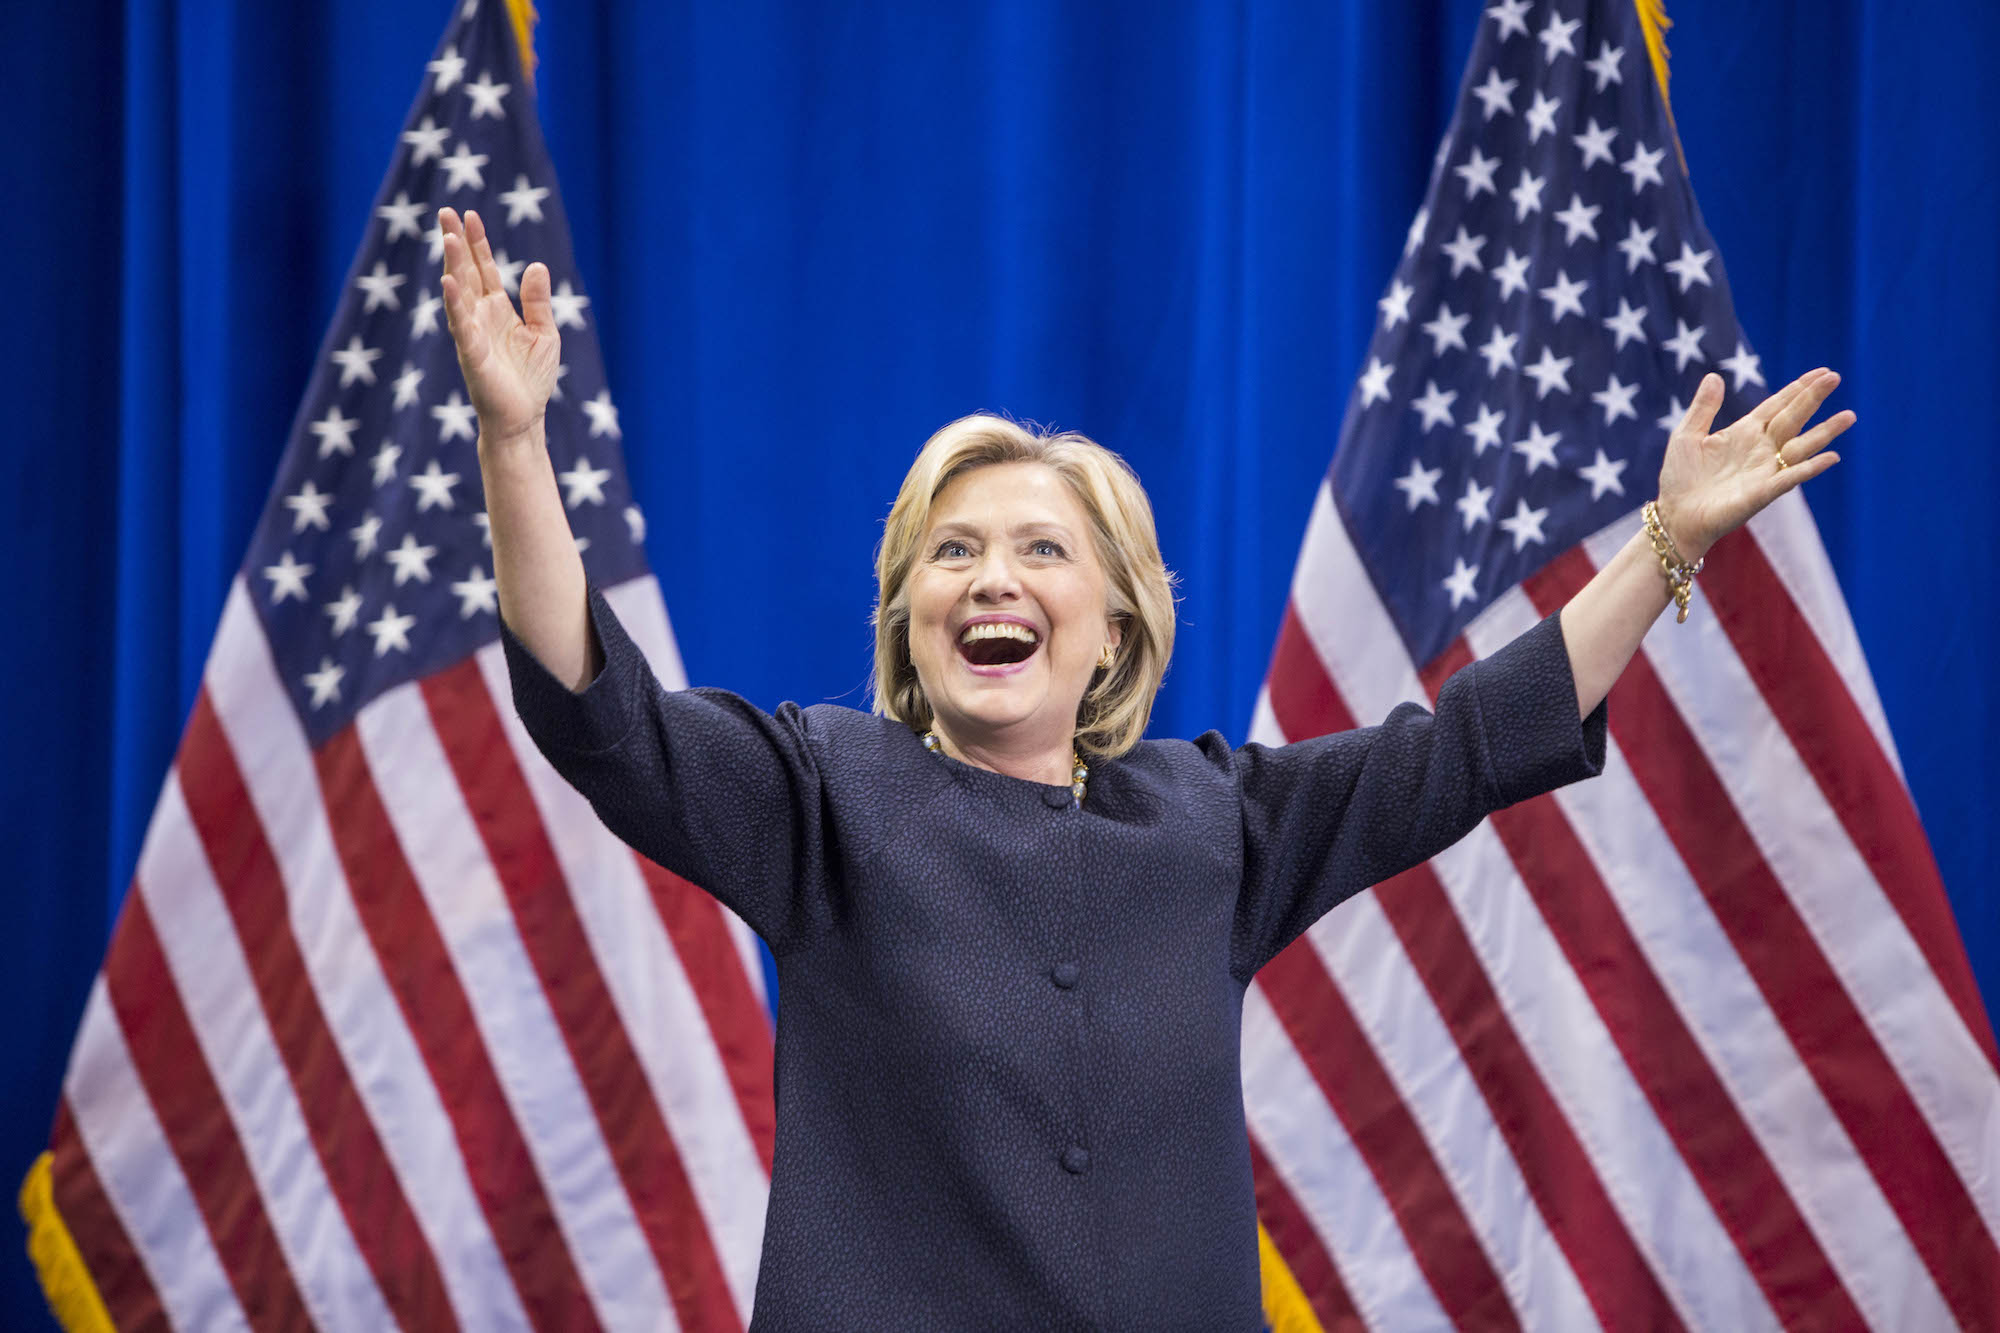 Democratic presidential candidate Hillary Clinton raises her arms stands on stage as voters prepare to vote for Democrats or Republicans